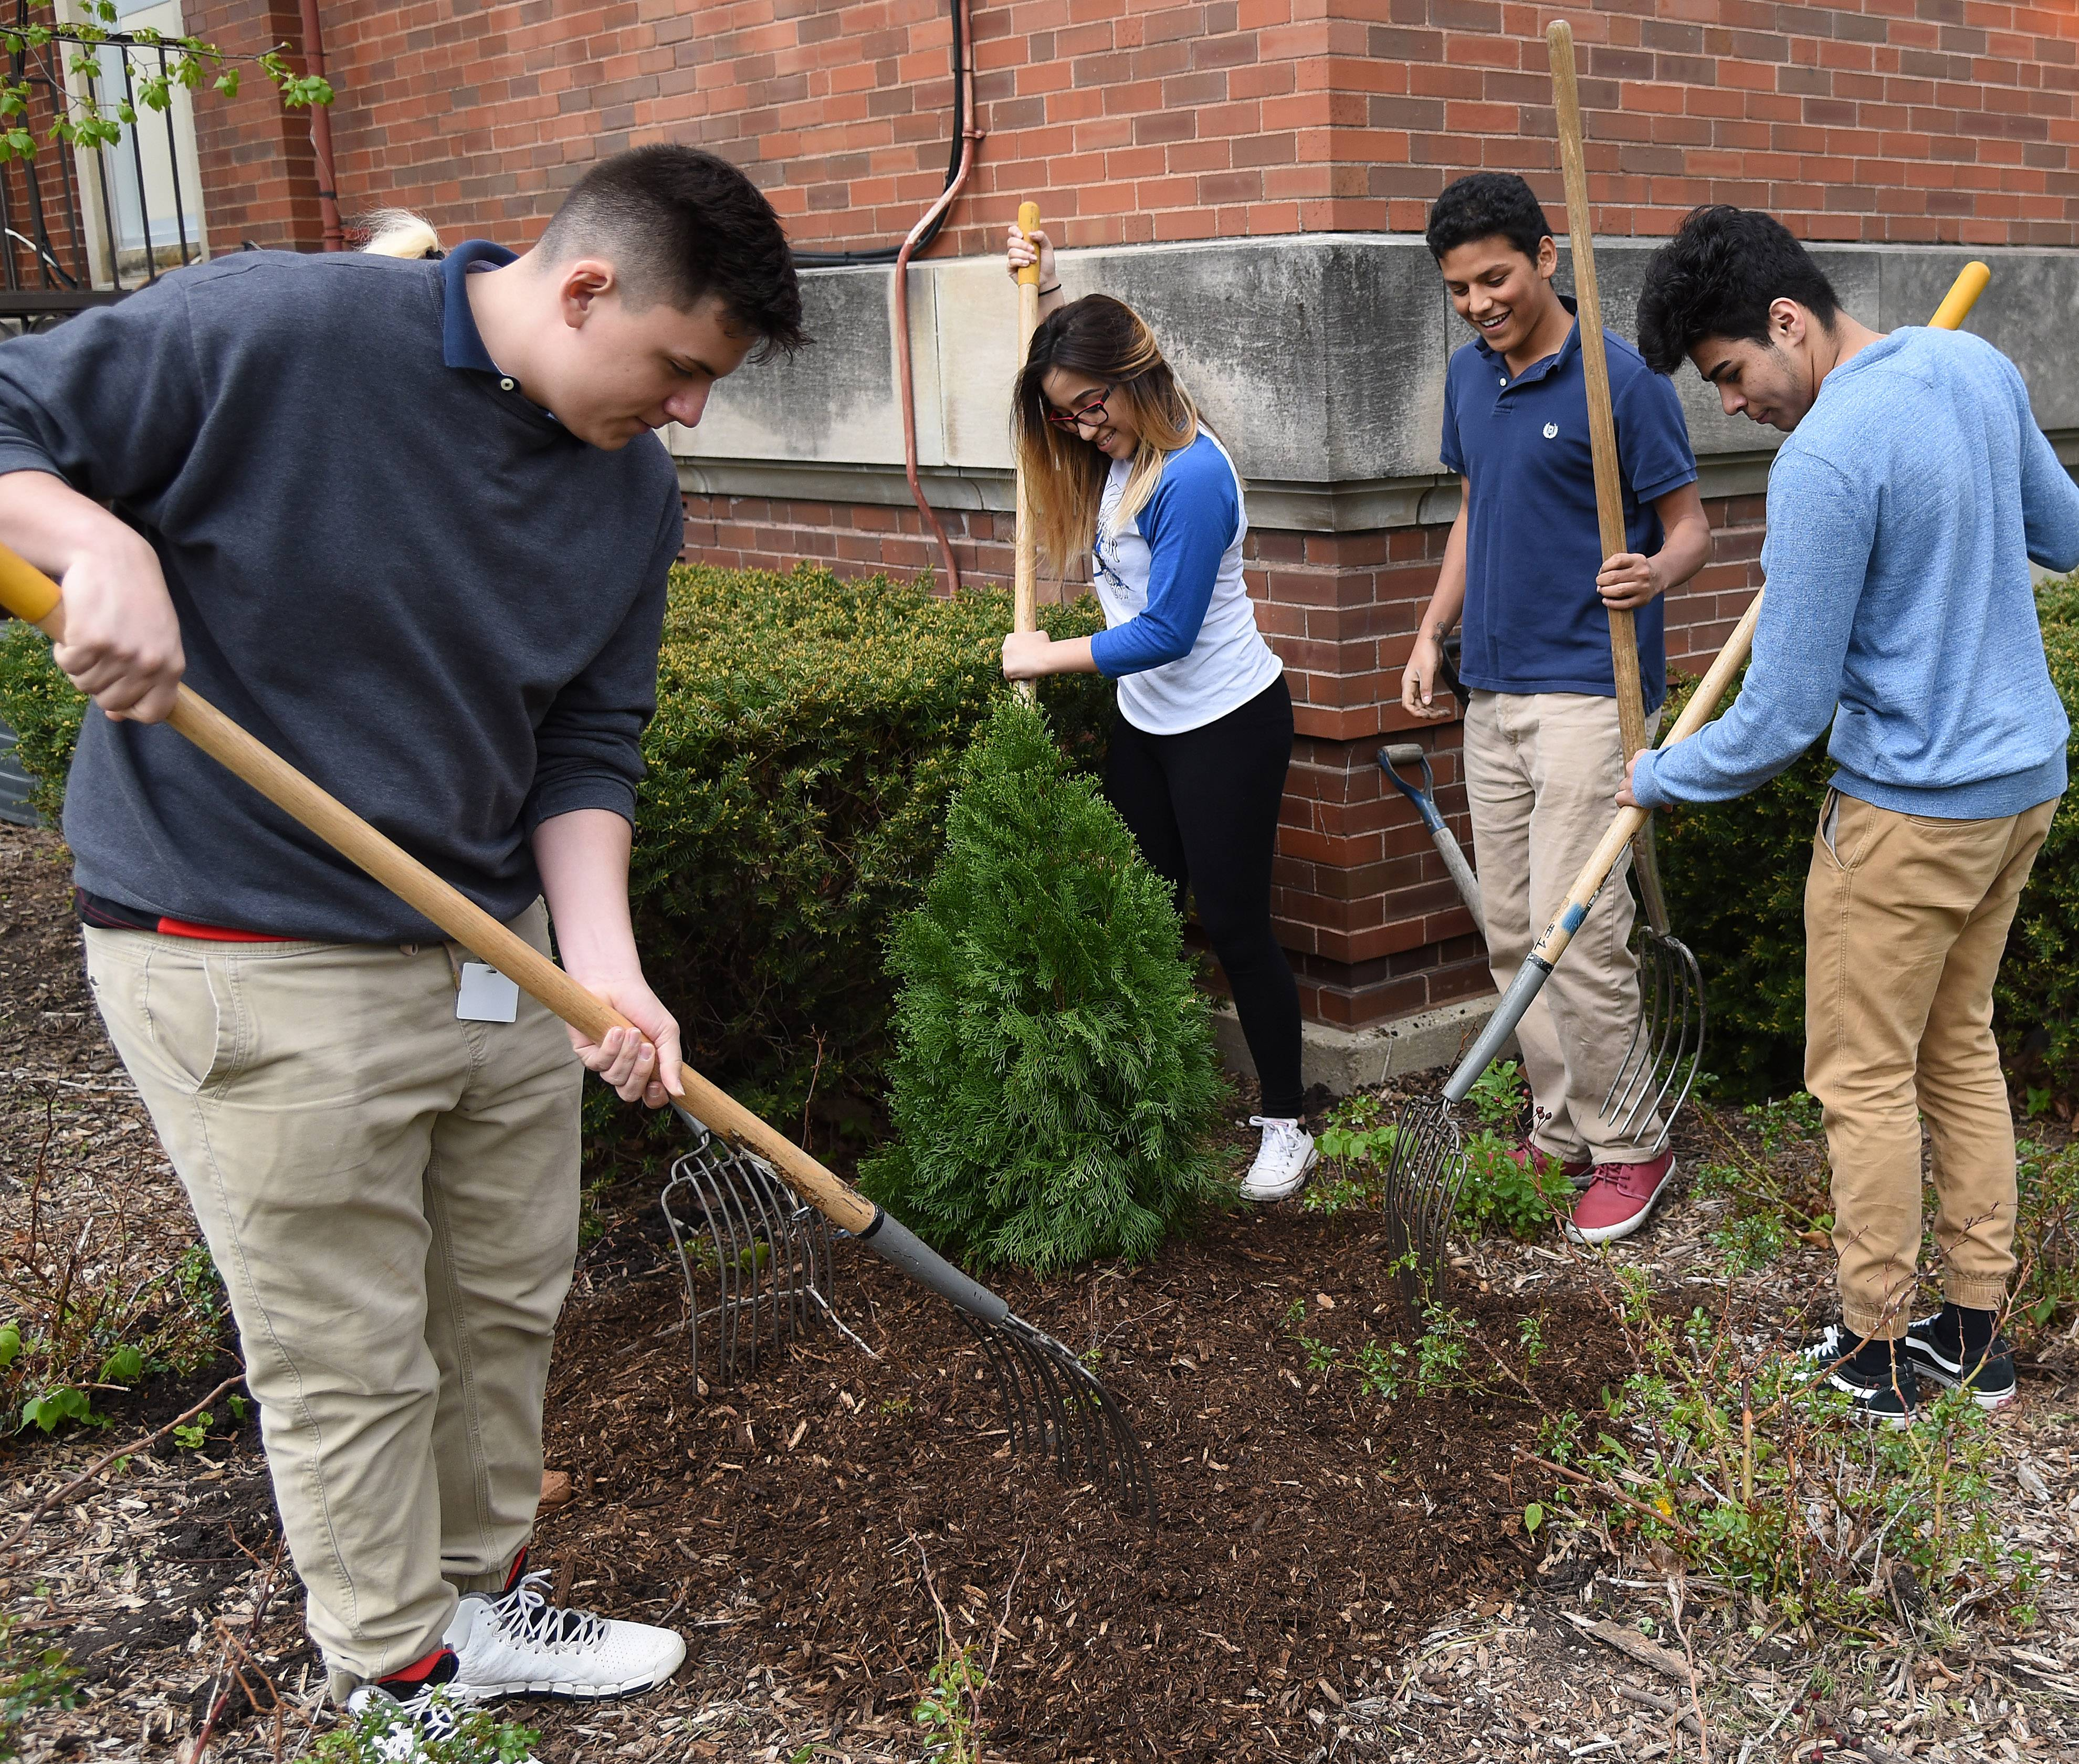 Science students from Elgin Area School District U-46's DREAM Academy on Gifford Street in Elgin plant an arborvitae at the school Friday in honor of Earth Day. Pictured, from left, are Alejandro Baez, Mariana Cintora, Christian Gallardo and Jose Chavez.